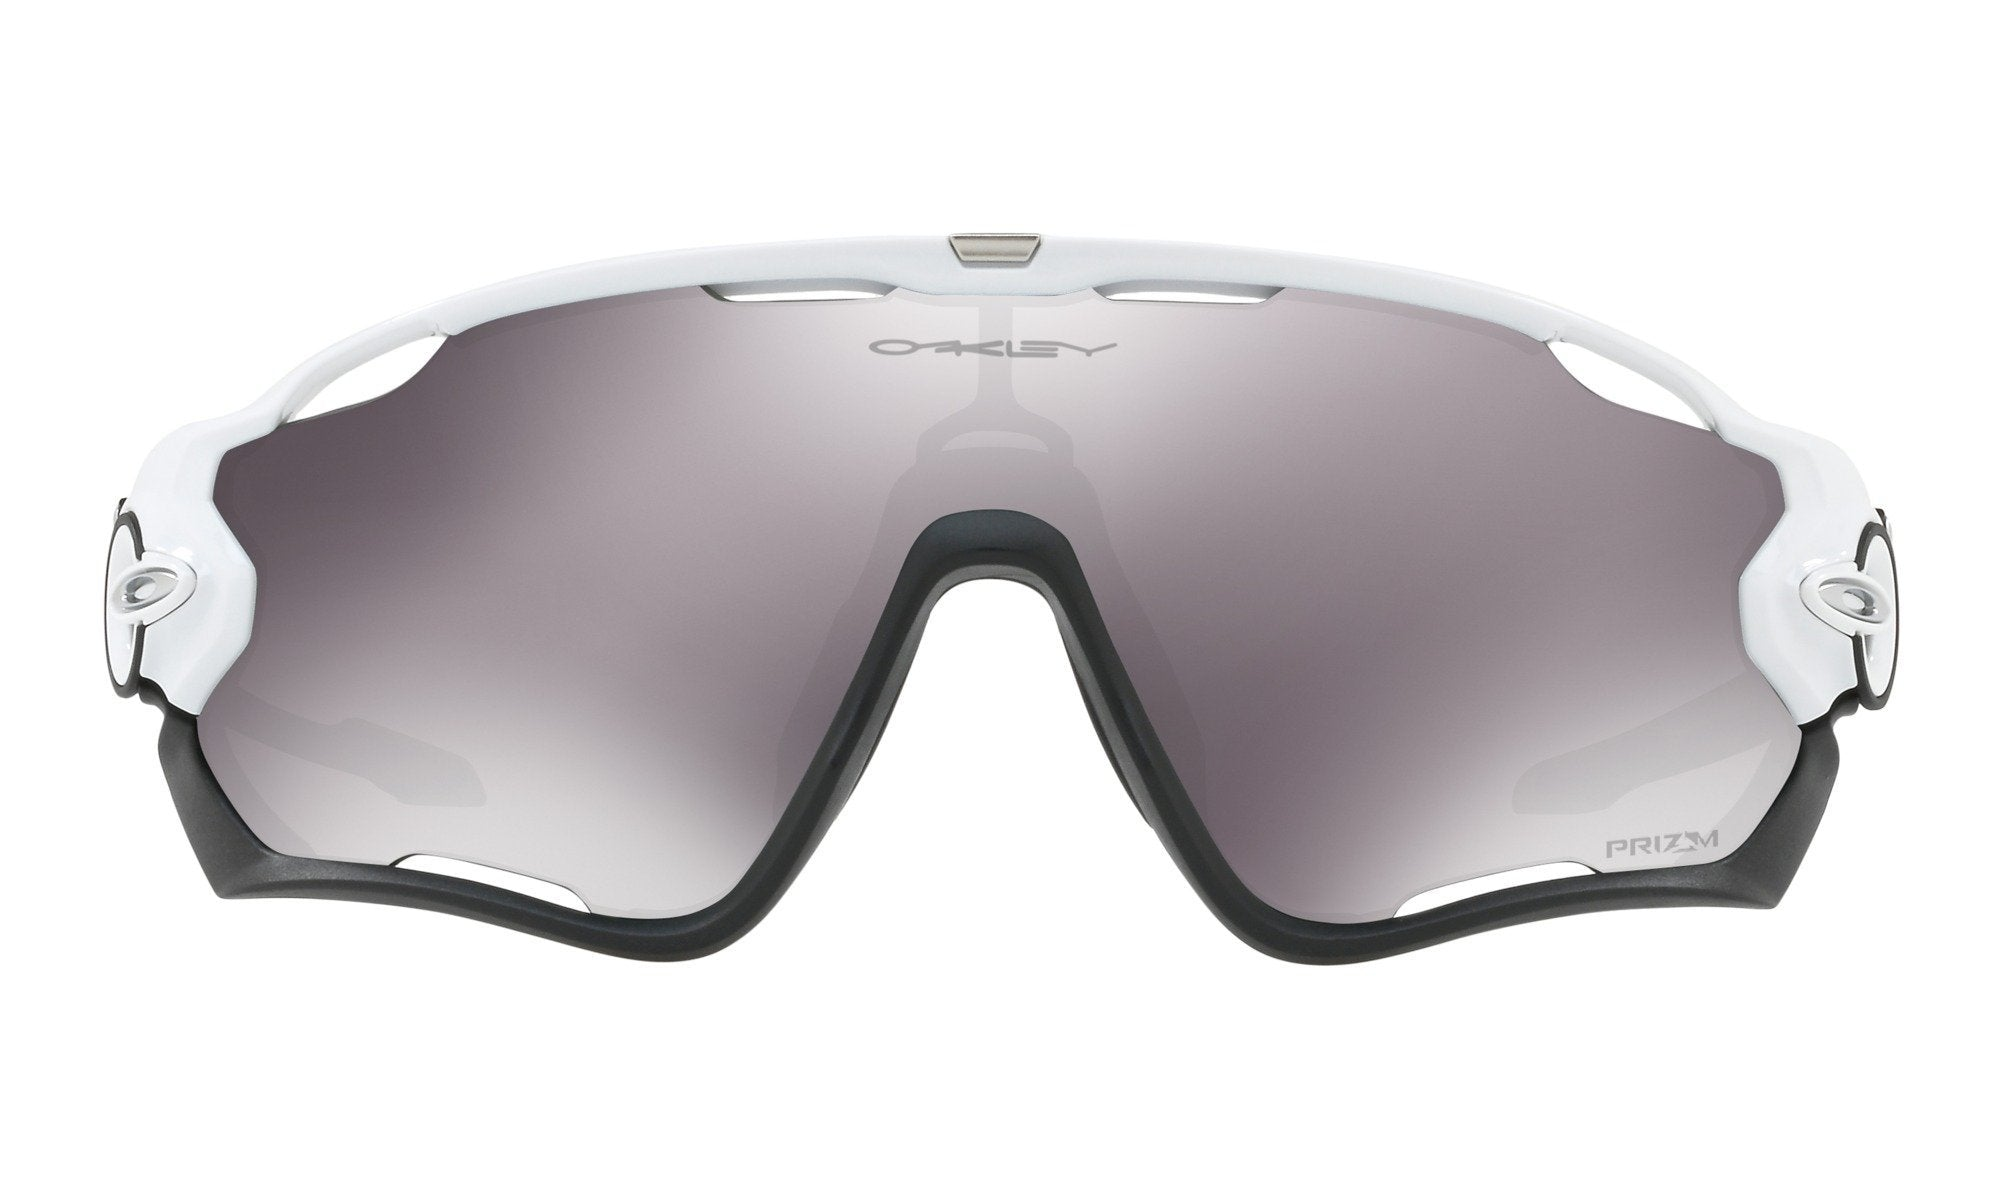 Oakley Jawbreaker Glasses w/ Prizm Lens - Cycles Galleria Melbourne